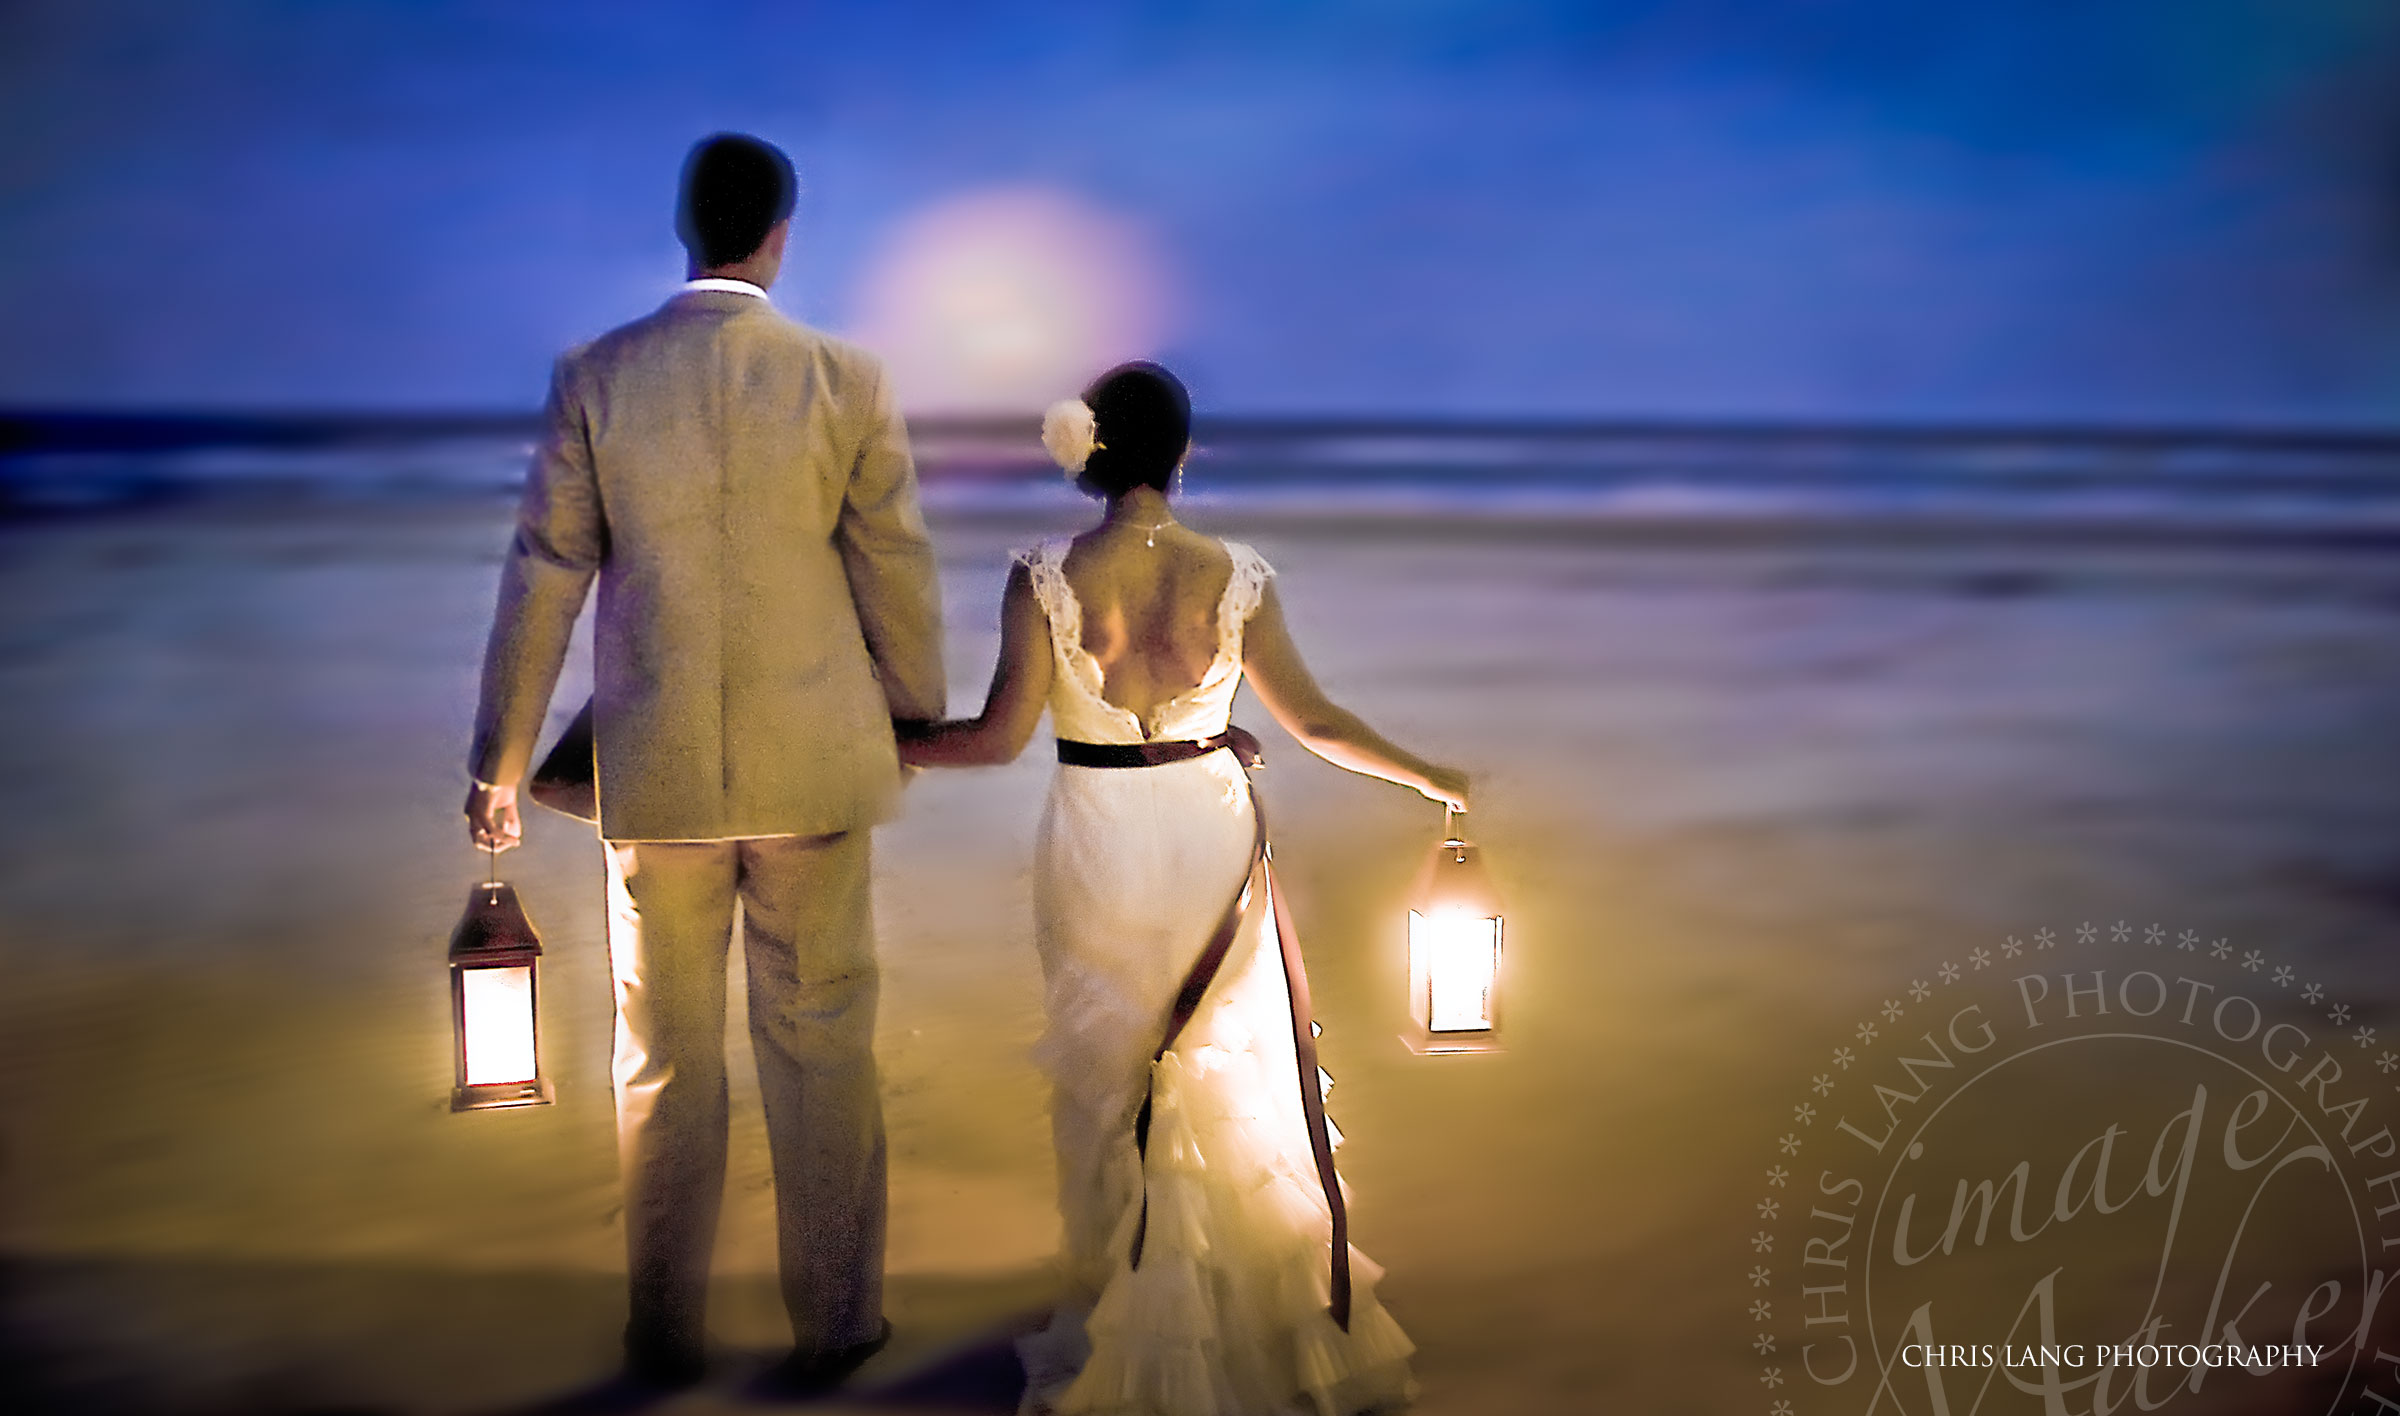 creative wedding picture of bride and groom holding lanterns on the beach wilmington nc photographer